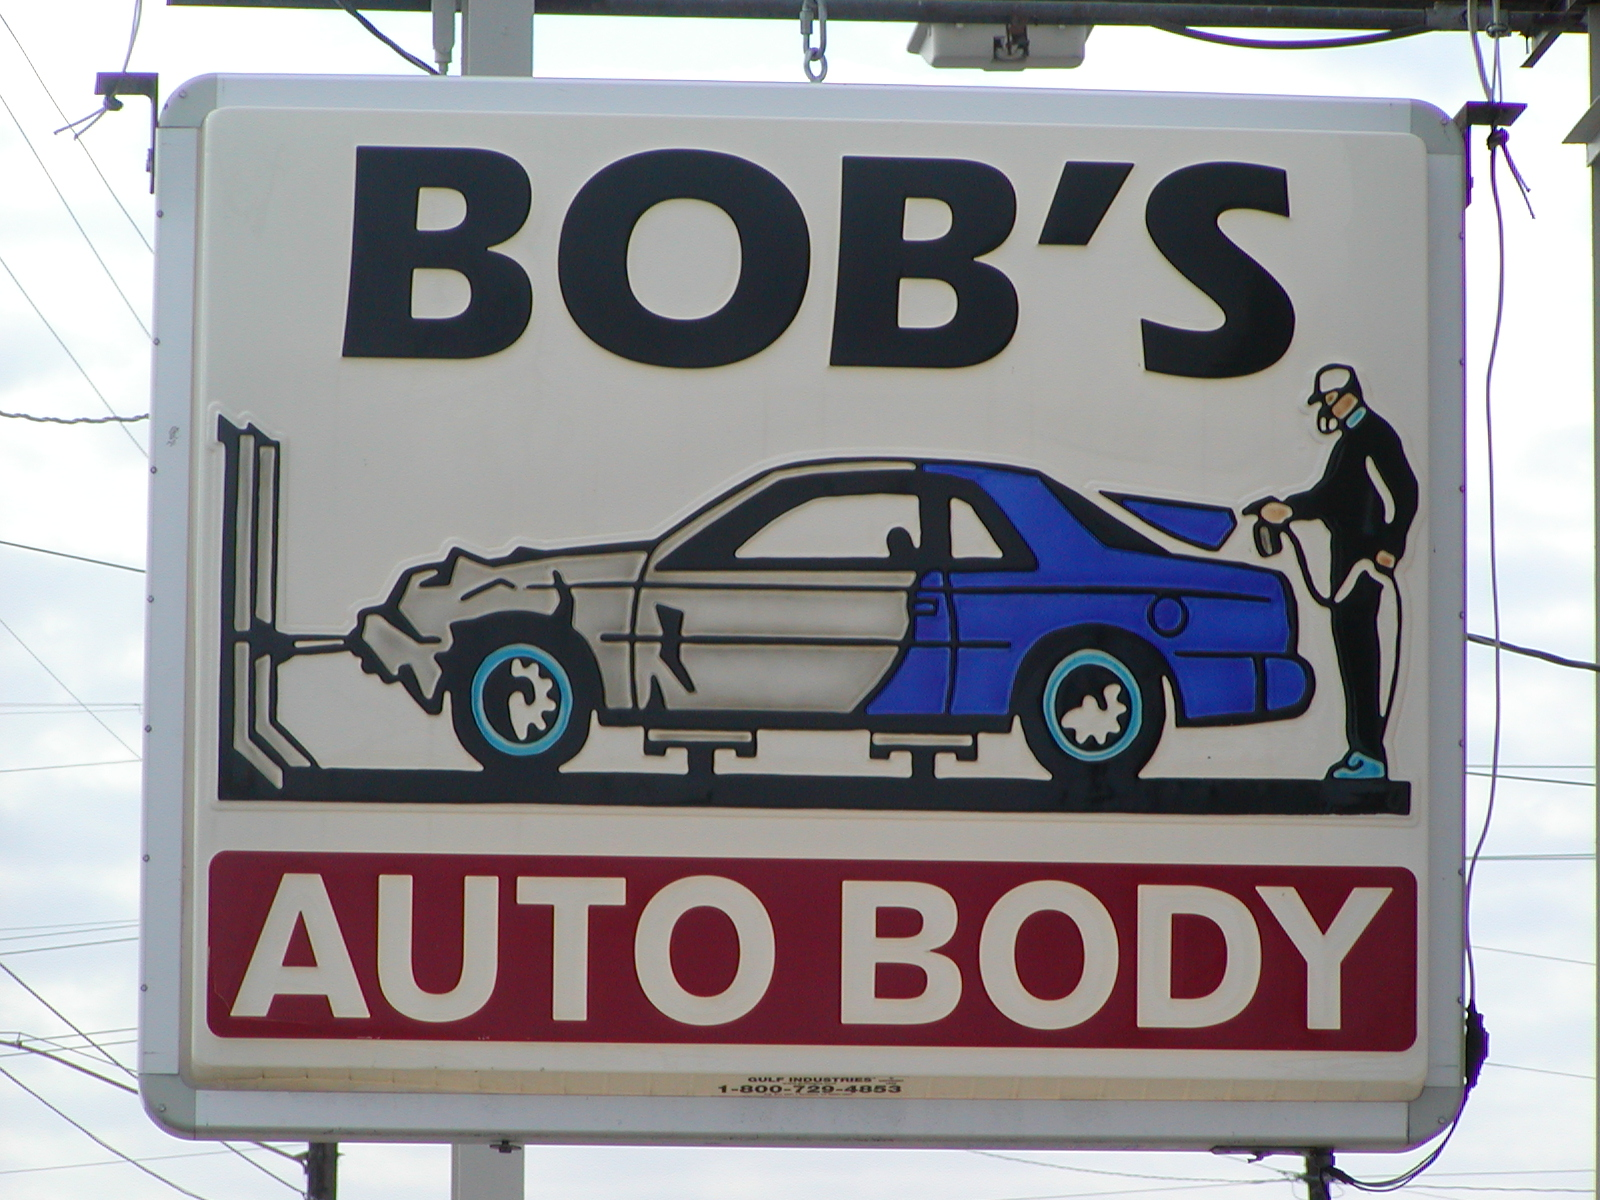 Bobs Auto Body - Panama City